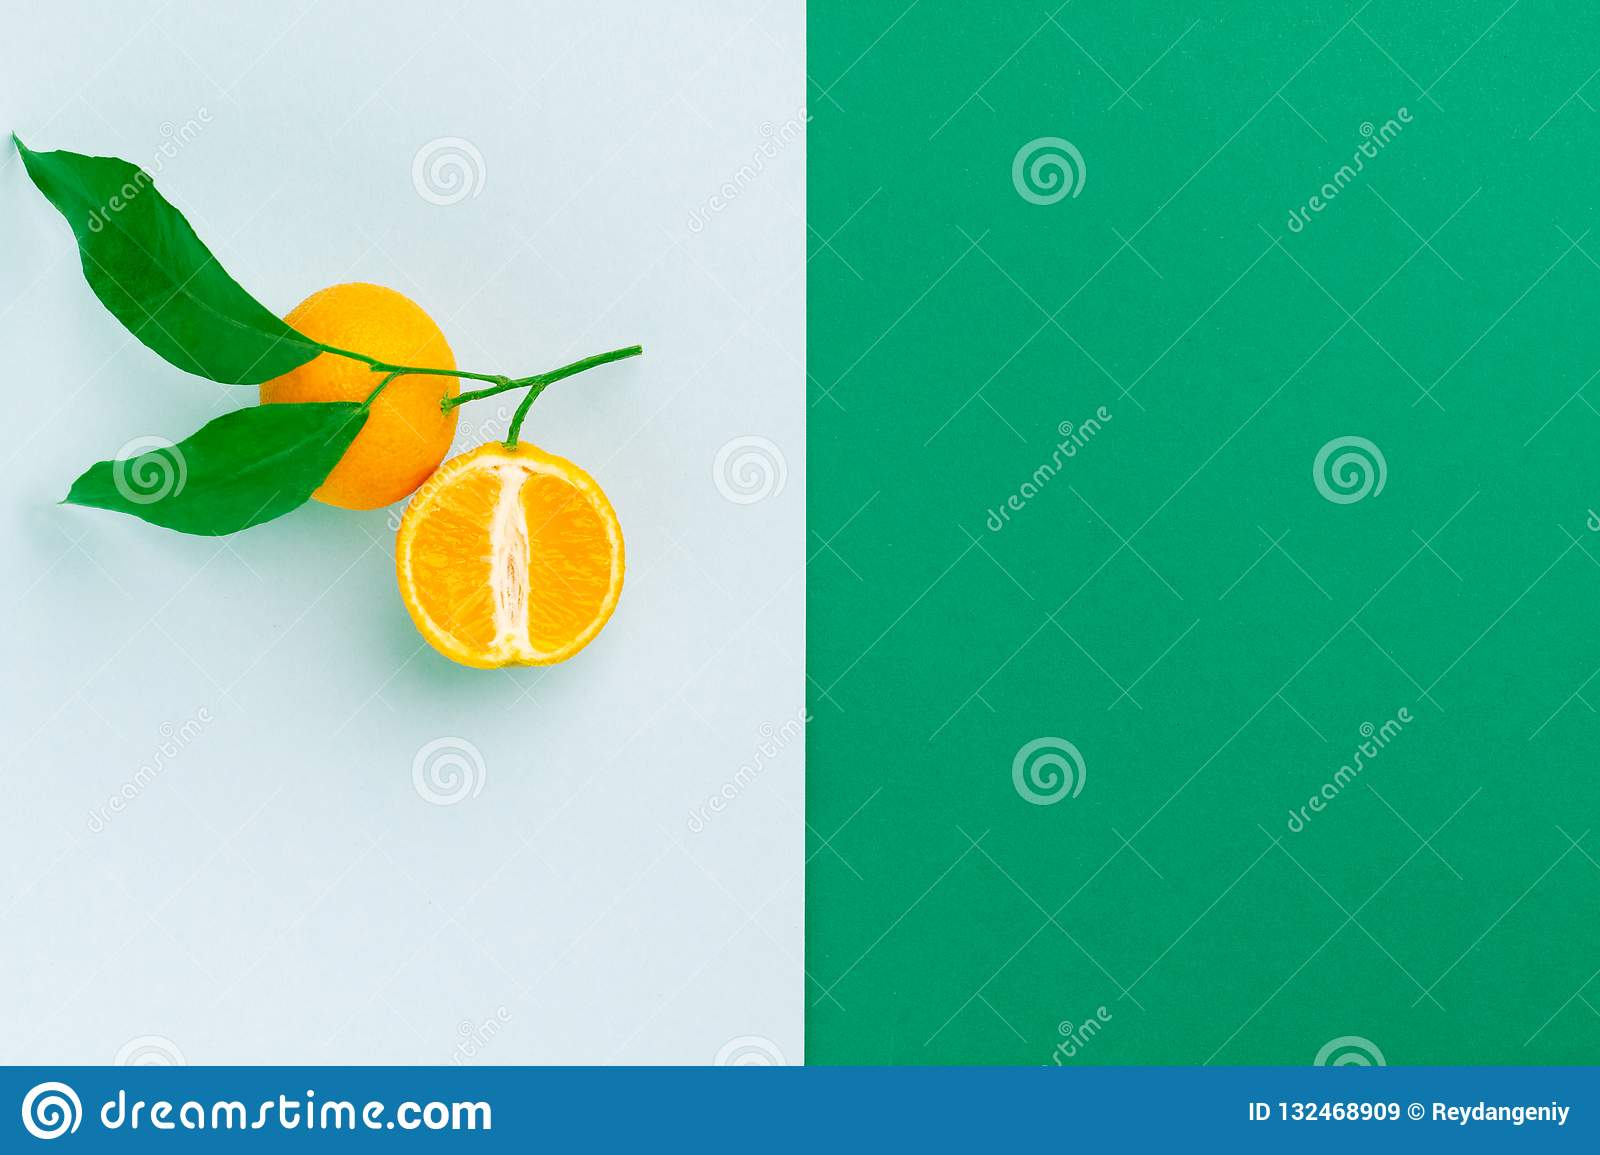 Fruit layout: yellow oranges with green leaves.